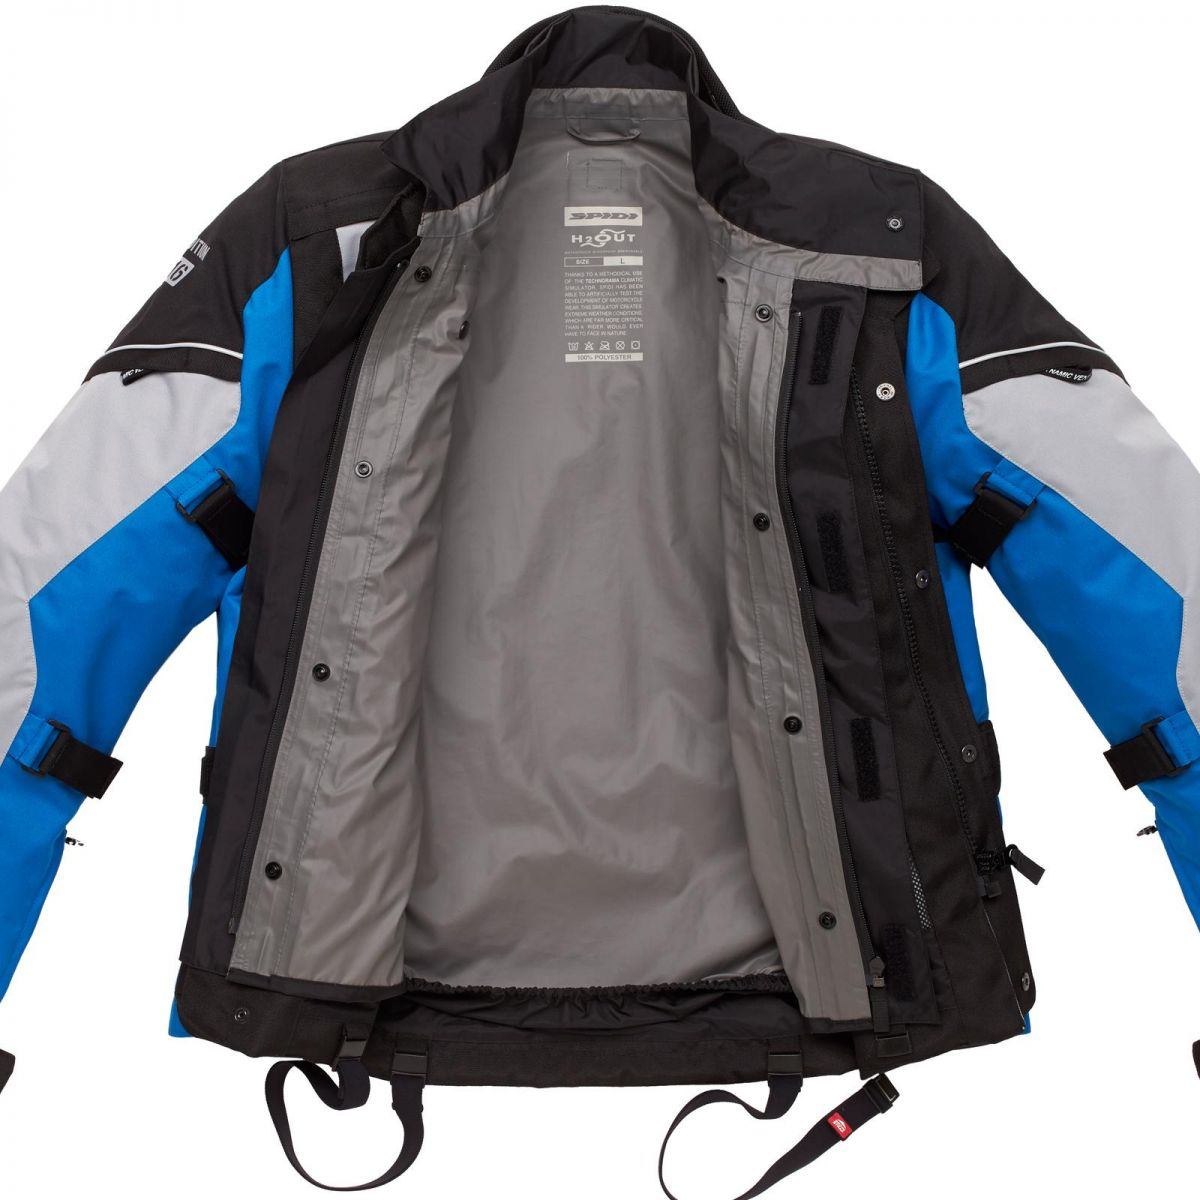 Jaqueta Spidi Voyager 3 H2Out Dark/ Grey/Blue ( Big Trail - Parka )  - Nova Centro Boutique Roupas para Motociclistas